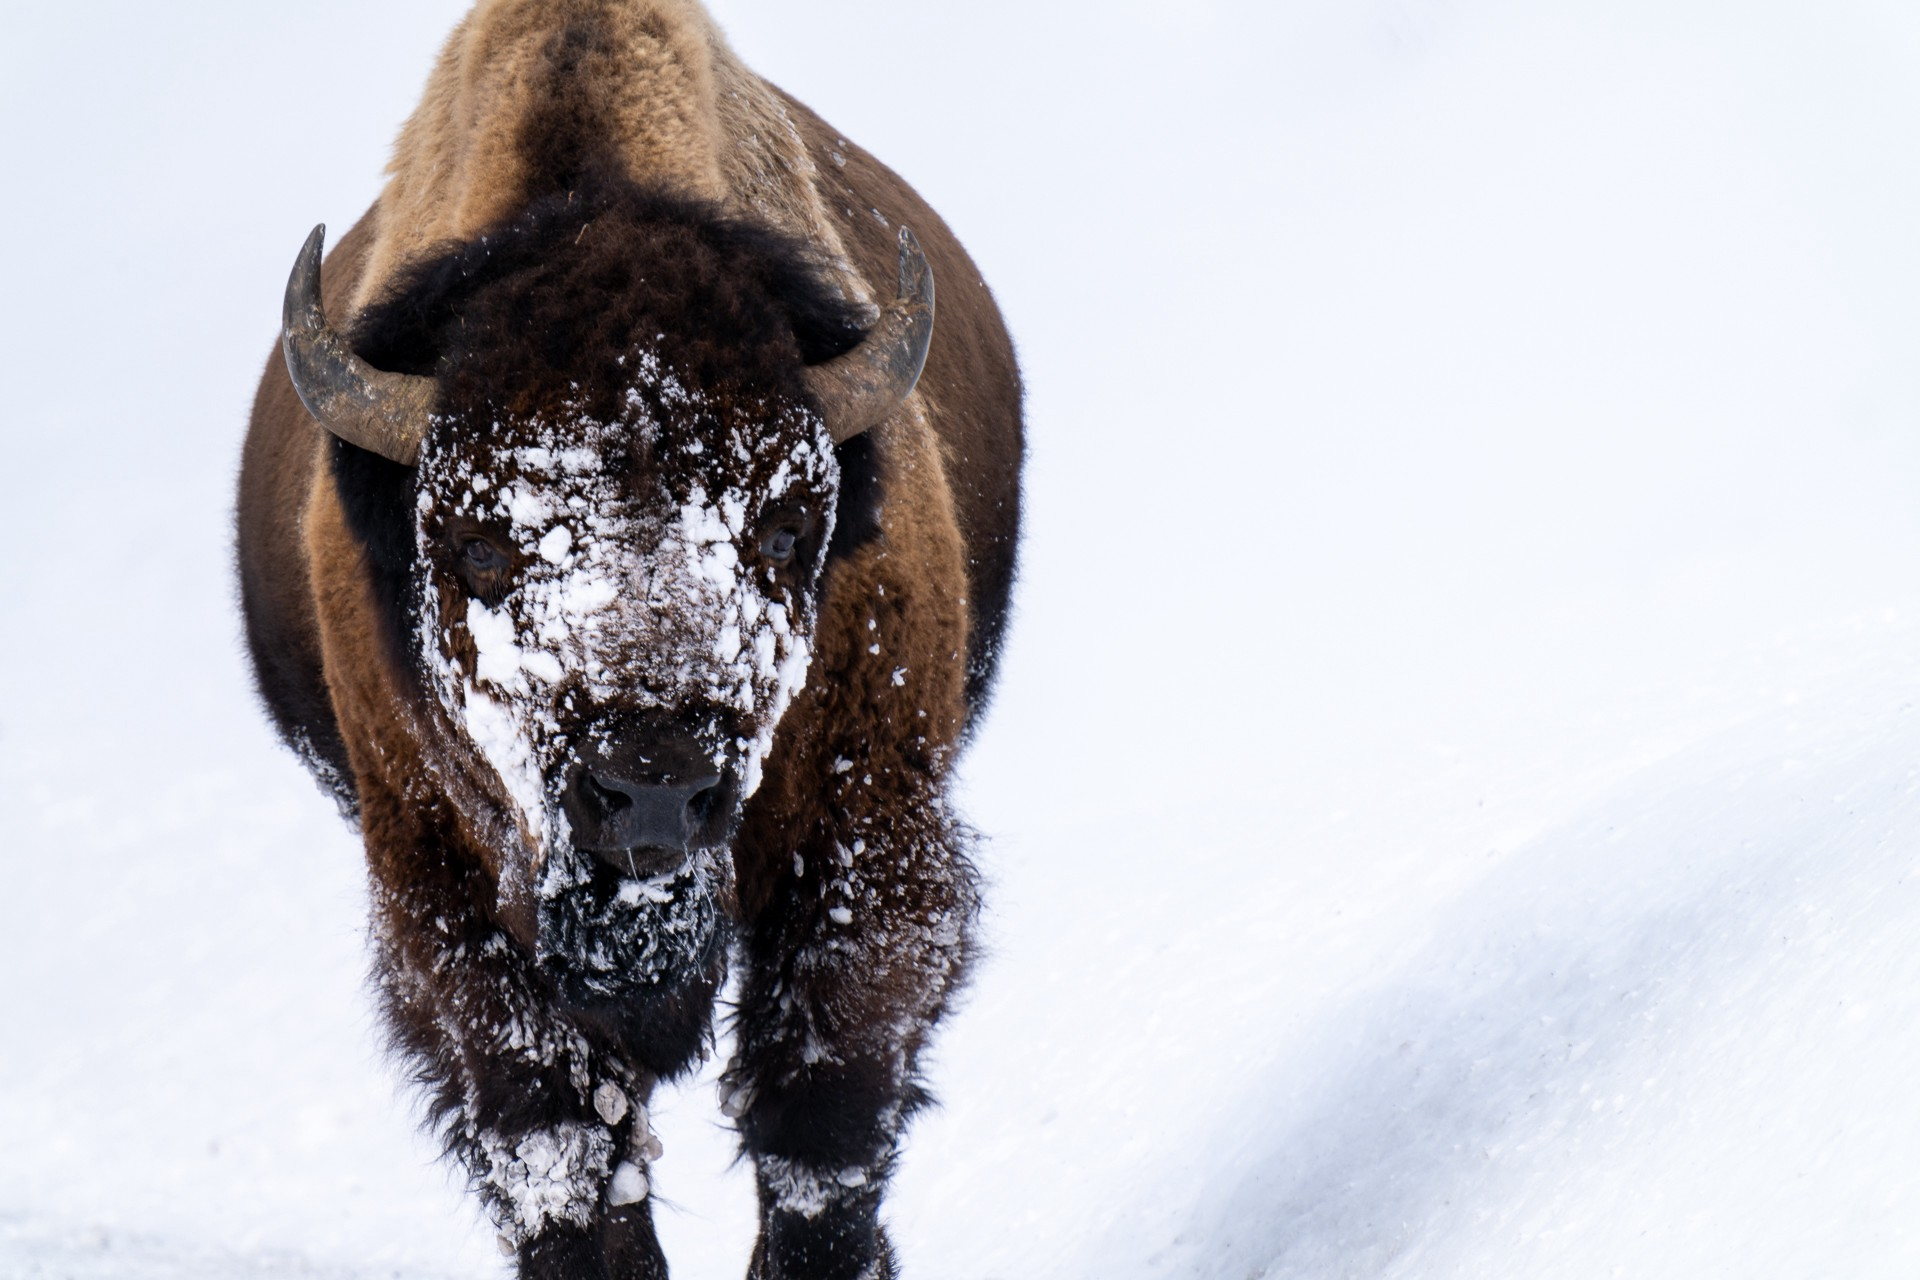 A bison with snow on his face.